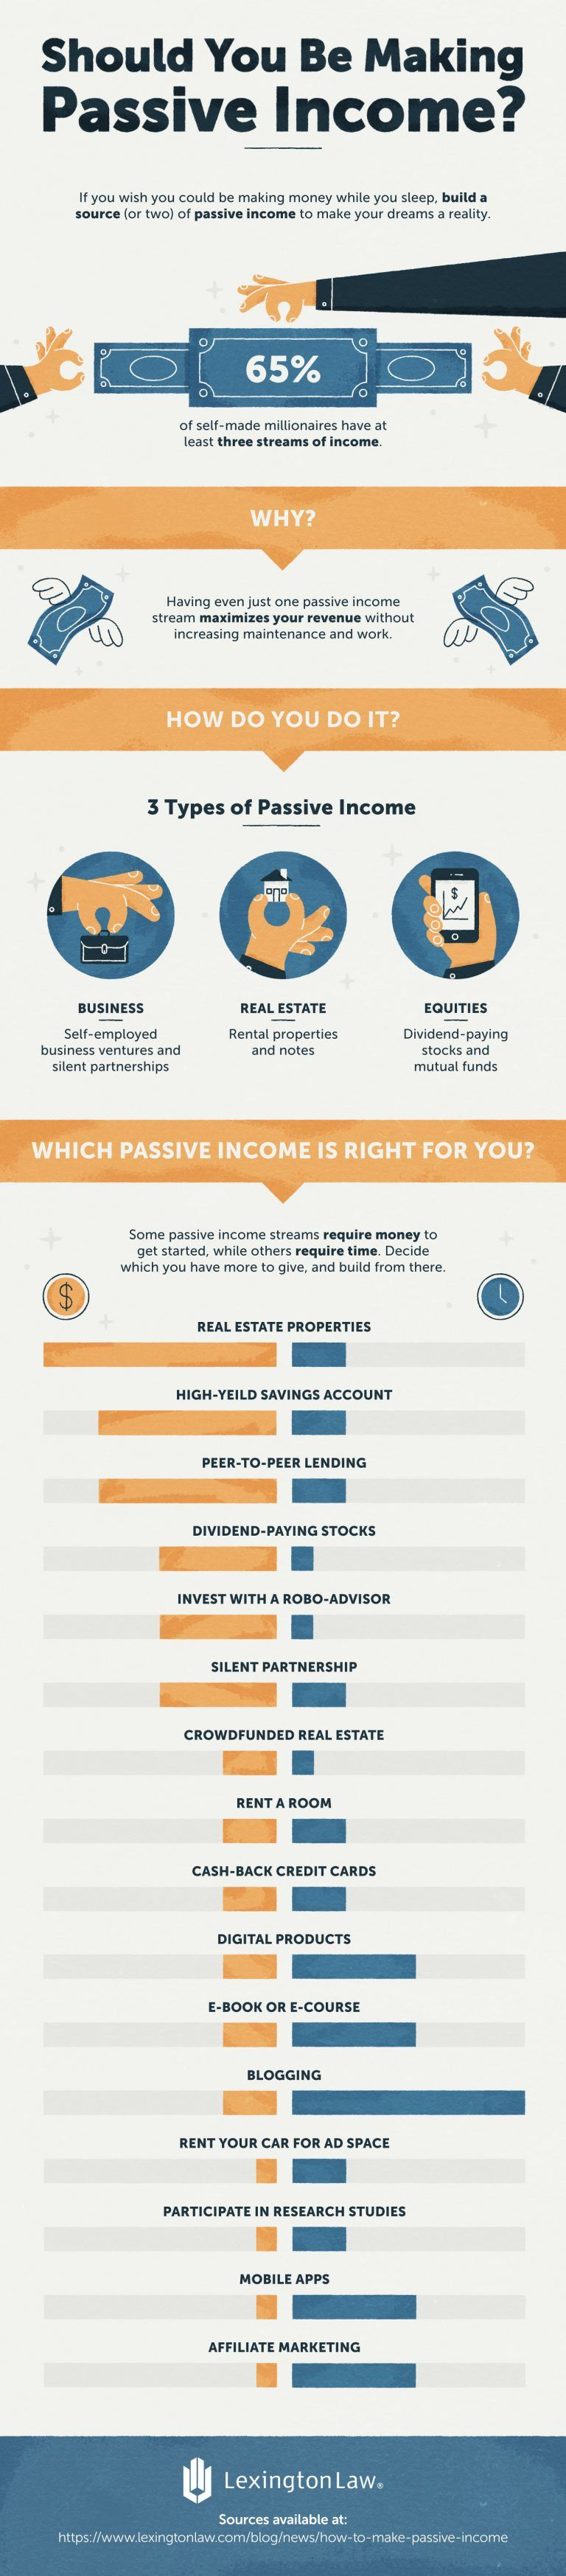 How To Make Passive Income Why You Should Lexington Law In 2021 Passive Income Passive Income Real Estate Lexington Law